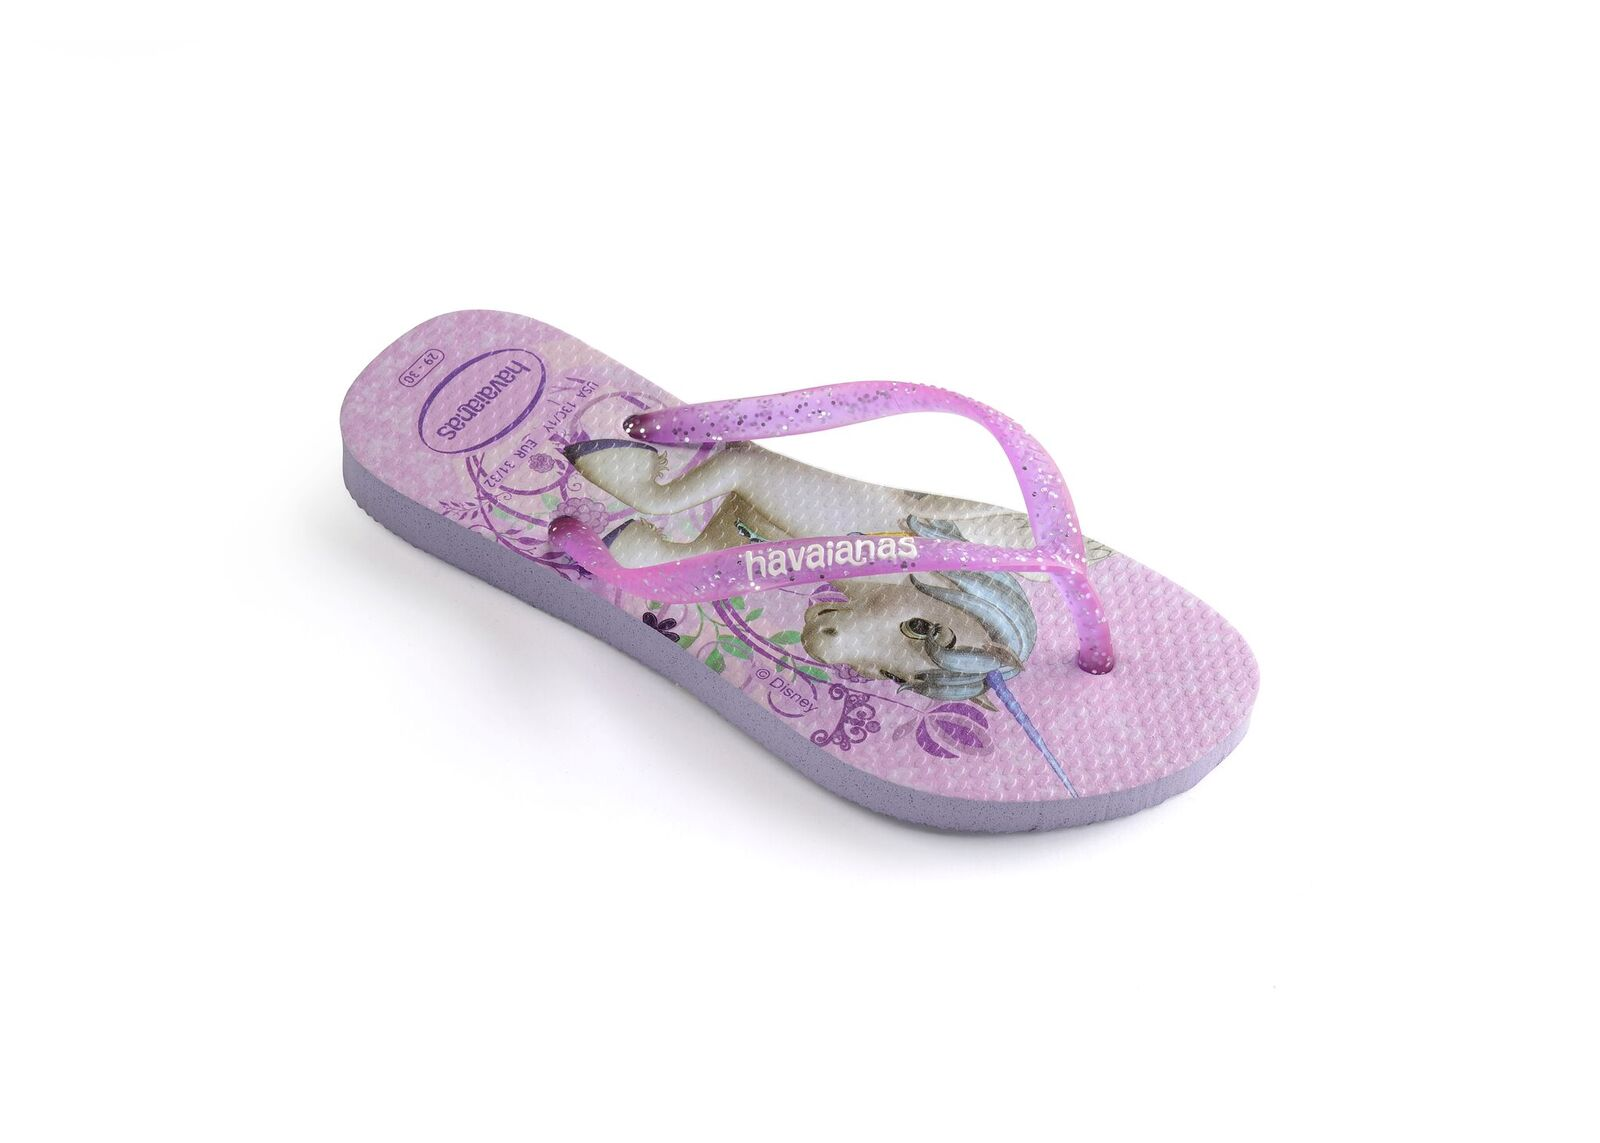 e726cc54d Kids Slim Princess - Havaianas - Kids Footwear-Youth (Sizes 1 to 6)    Mariposa Clothing - Seriously funky clothing and footwear for men